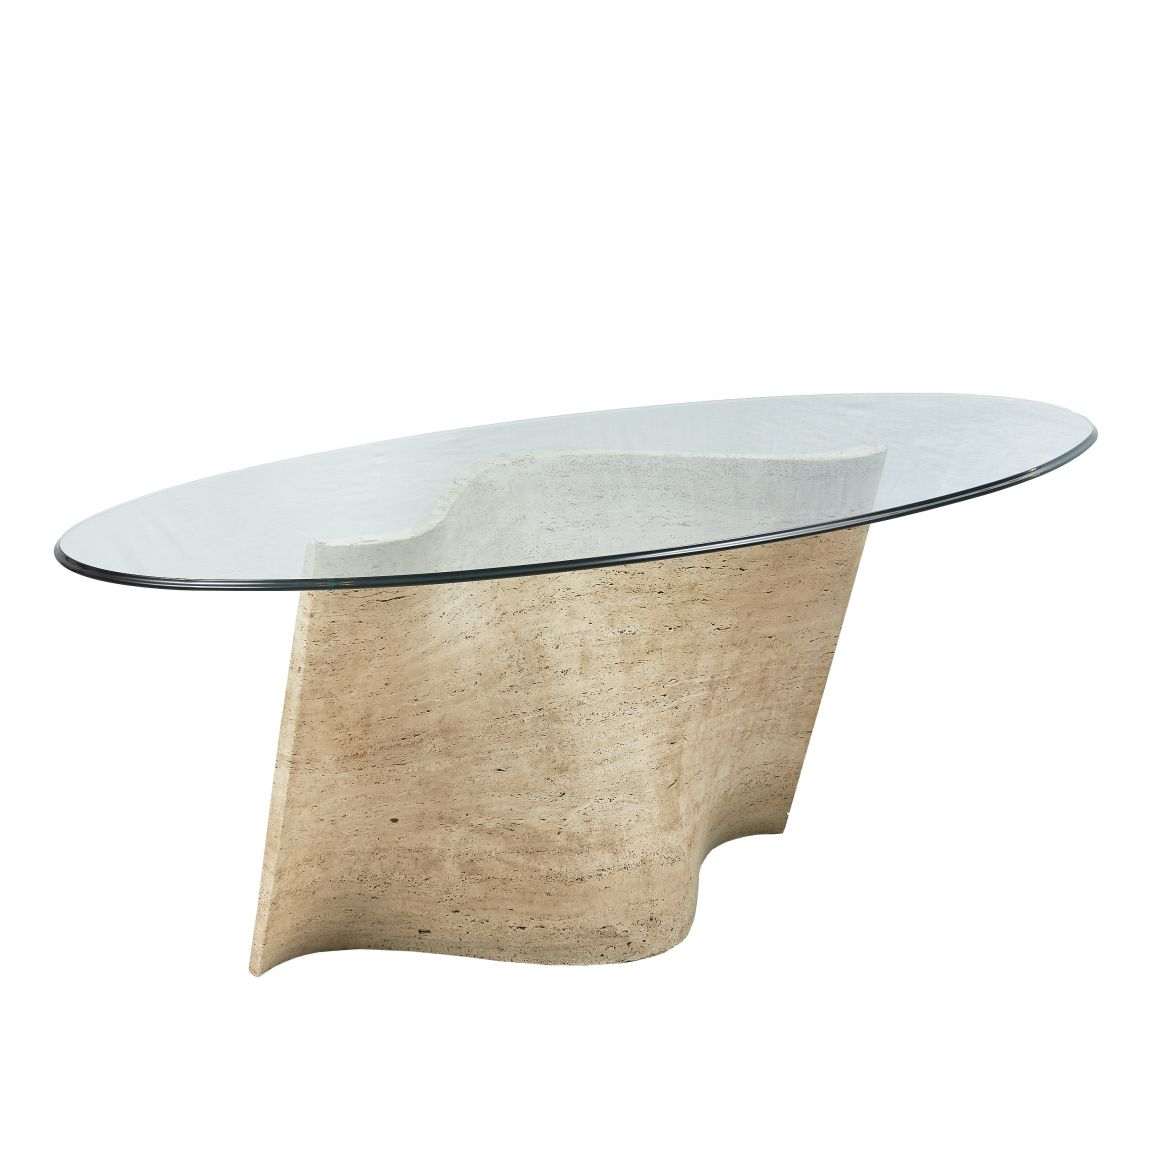 Travertine Wave Form Dining Table